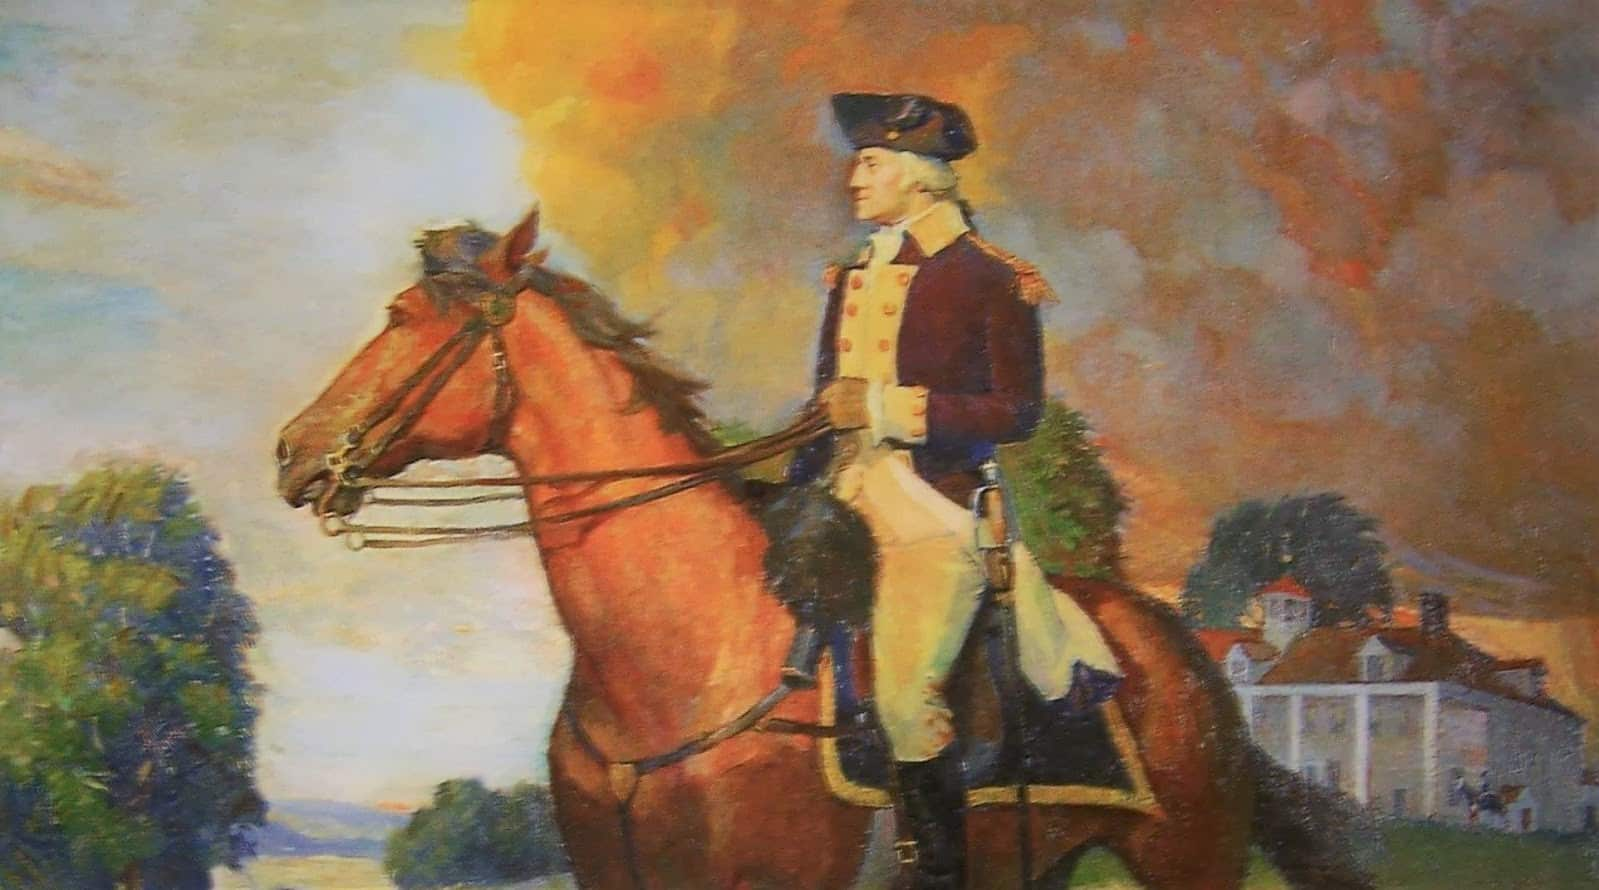 George Washington's Chestnut horse called Nelson from the revolutionary war